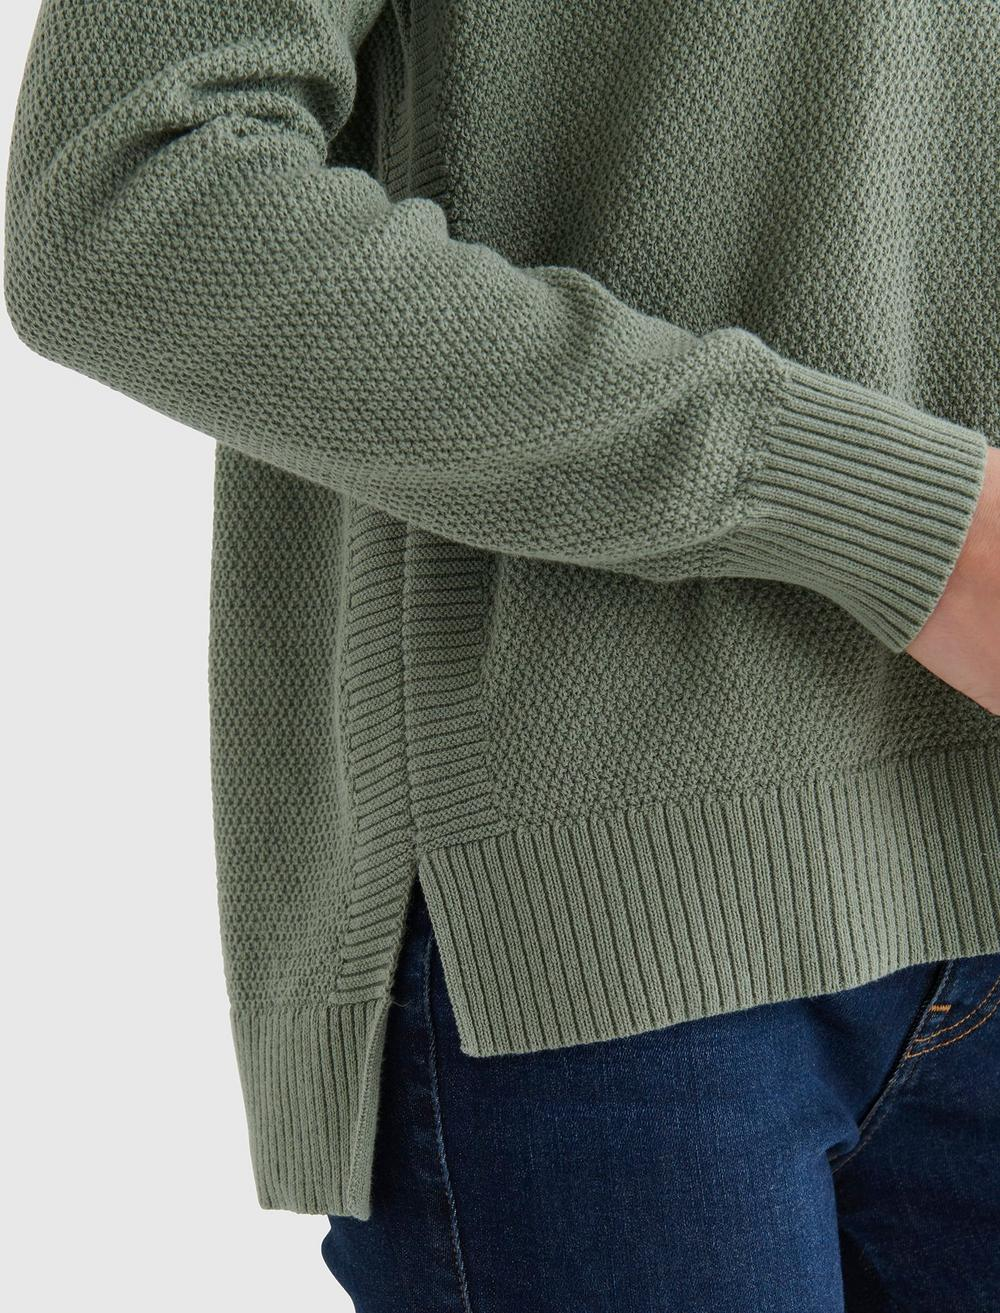 TEXTURED KNIT SWEATER, image 3